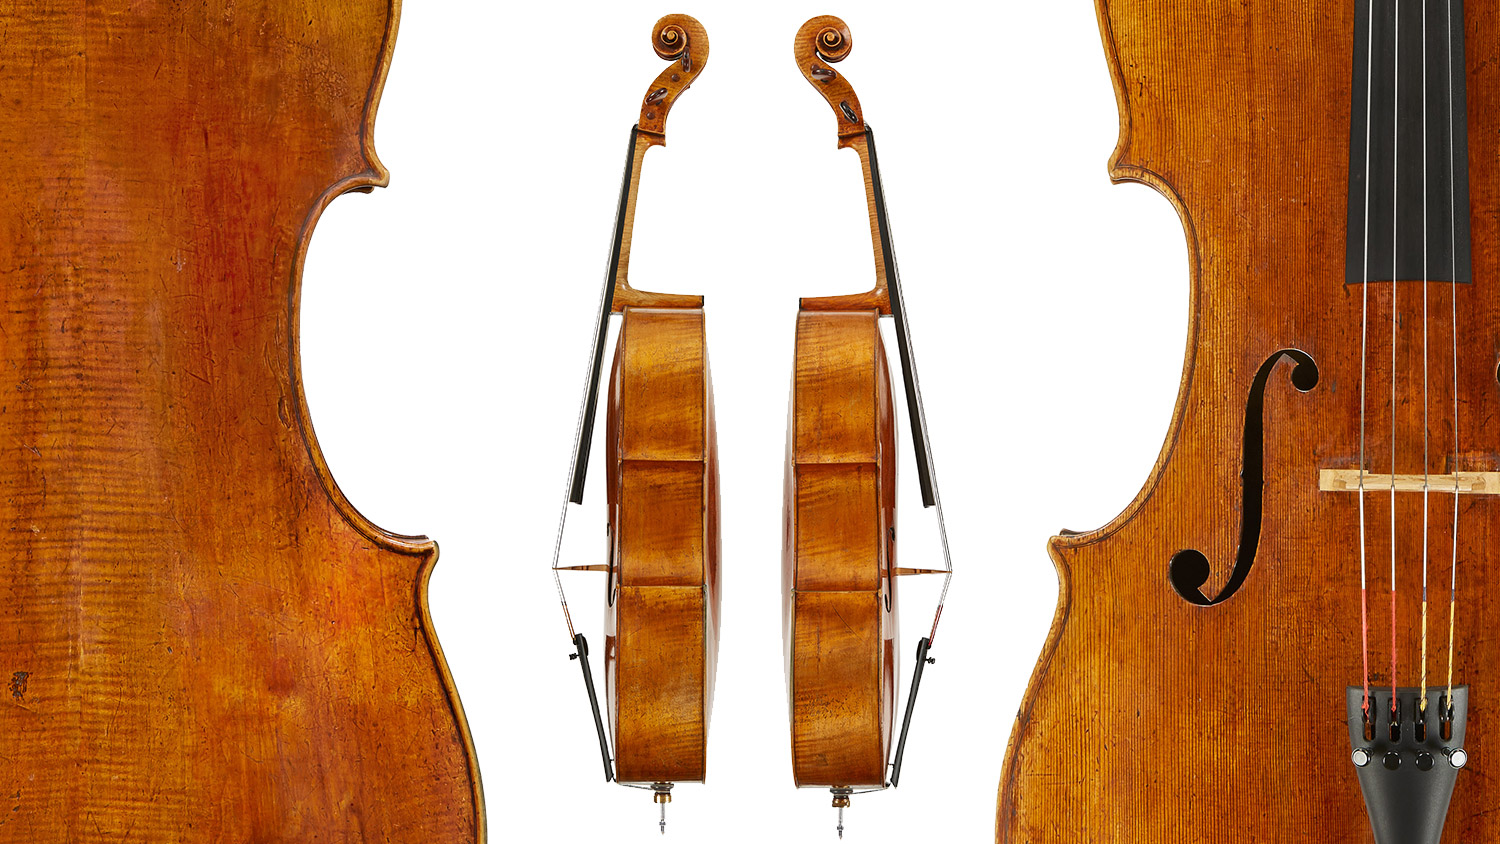 Antonio Stradivari cello